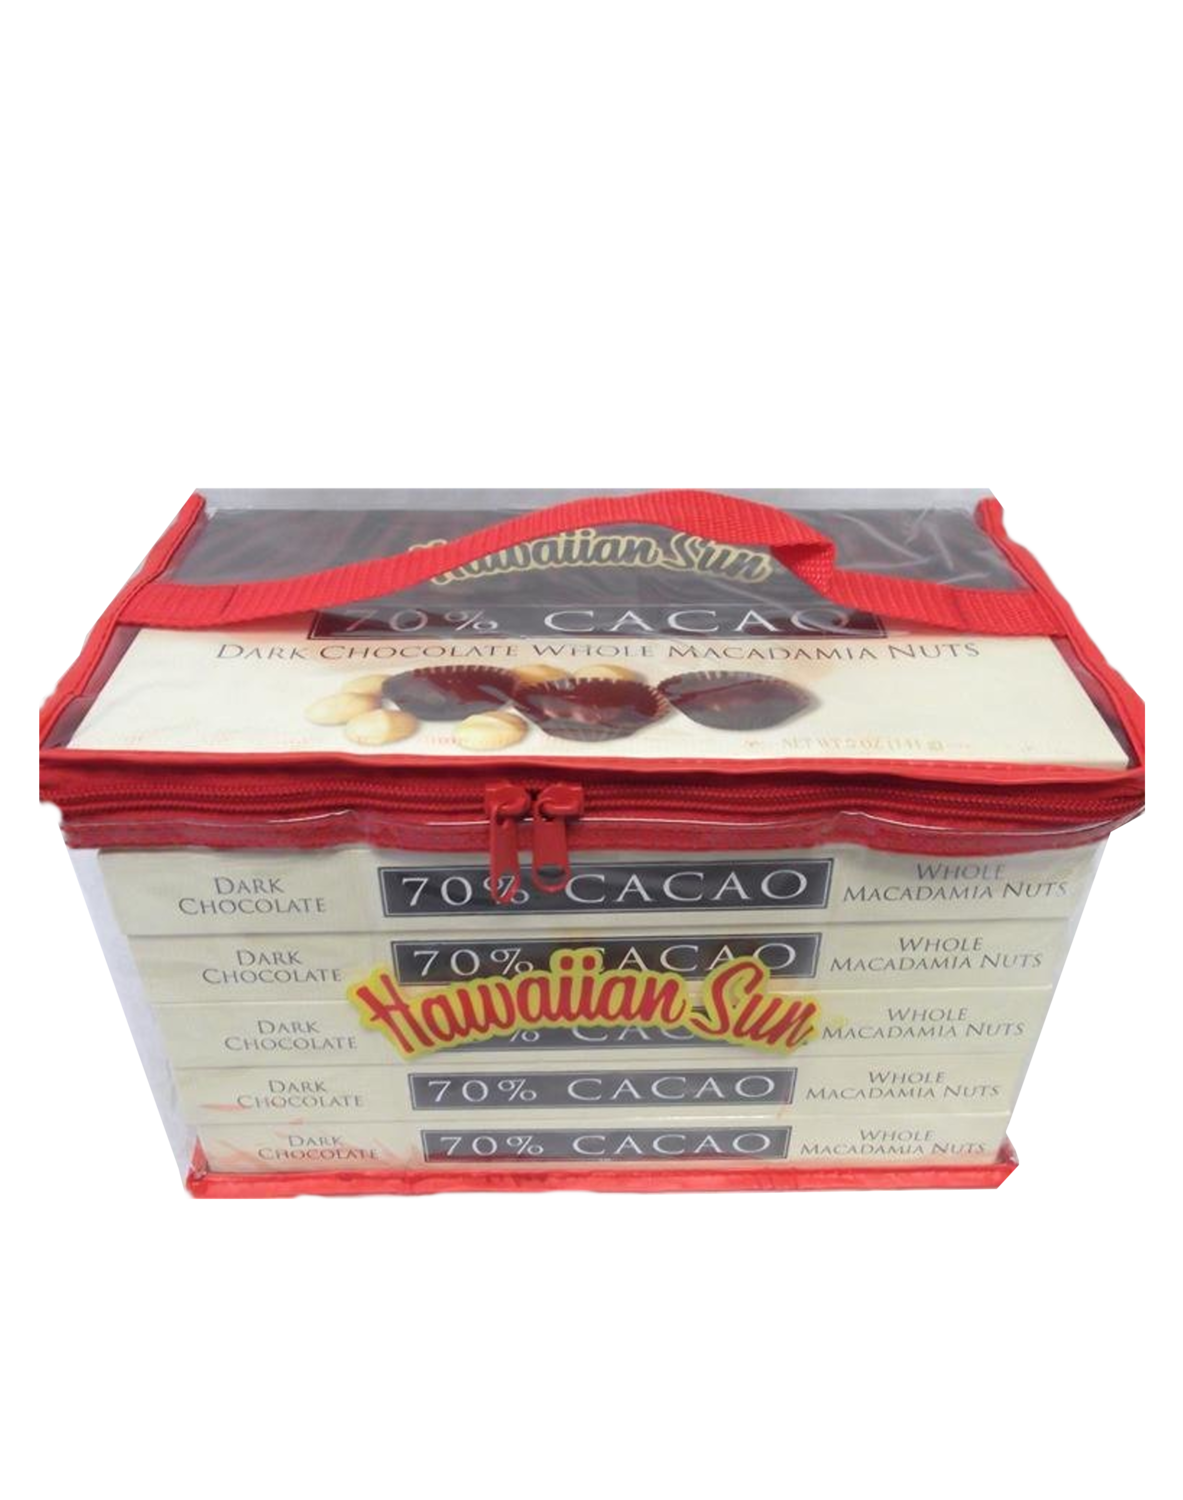 Hawaiian Sun Chocolate 70% Cacao Covered Macadamia Nuts 6/5 oz Gift Set